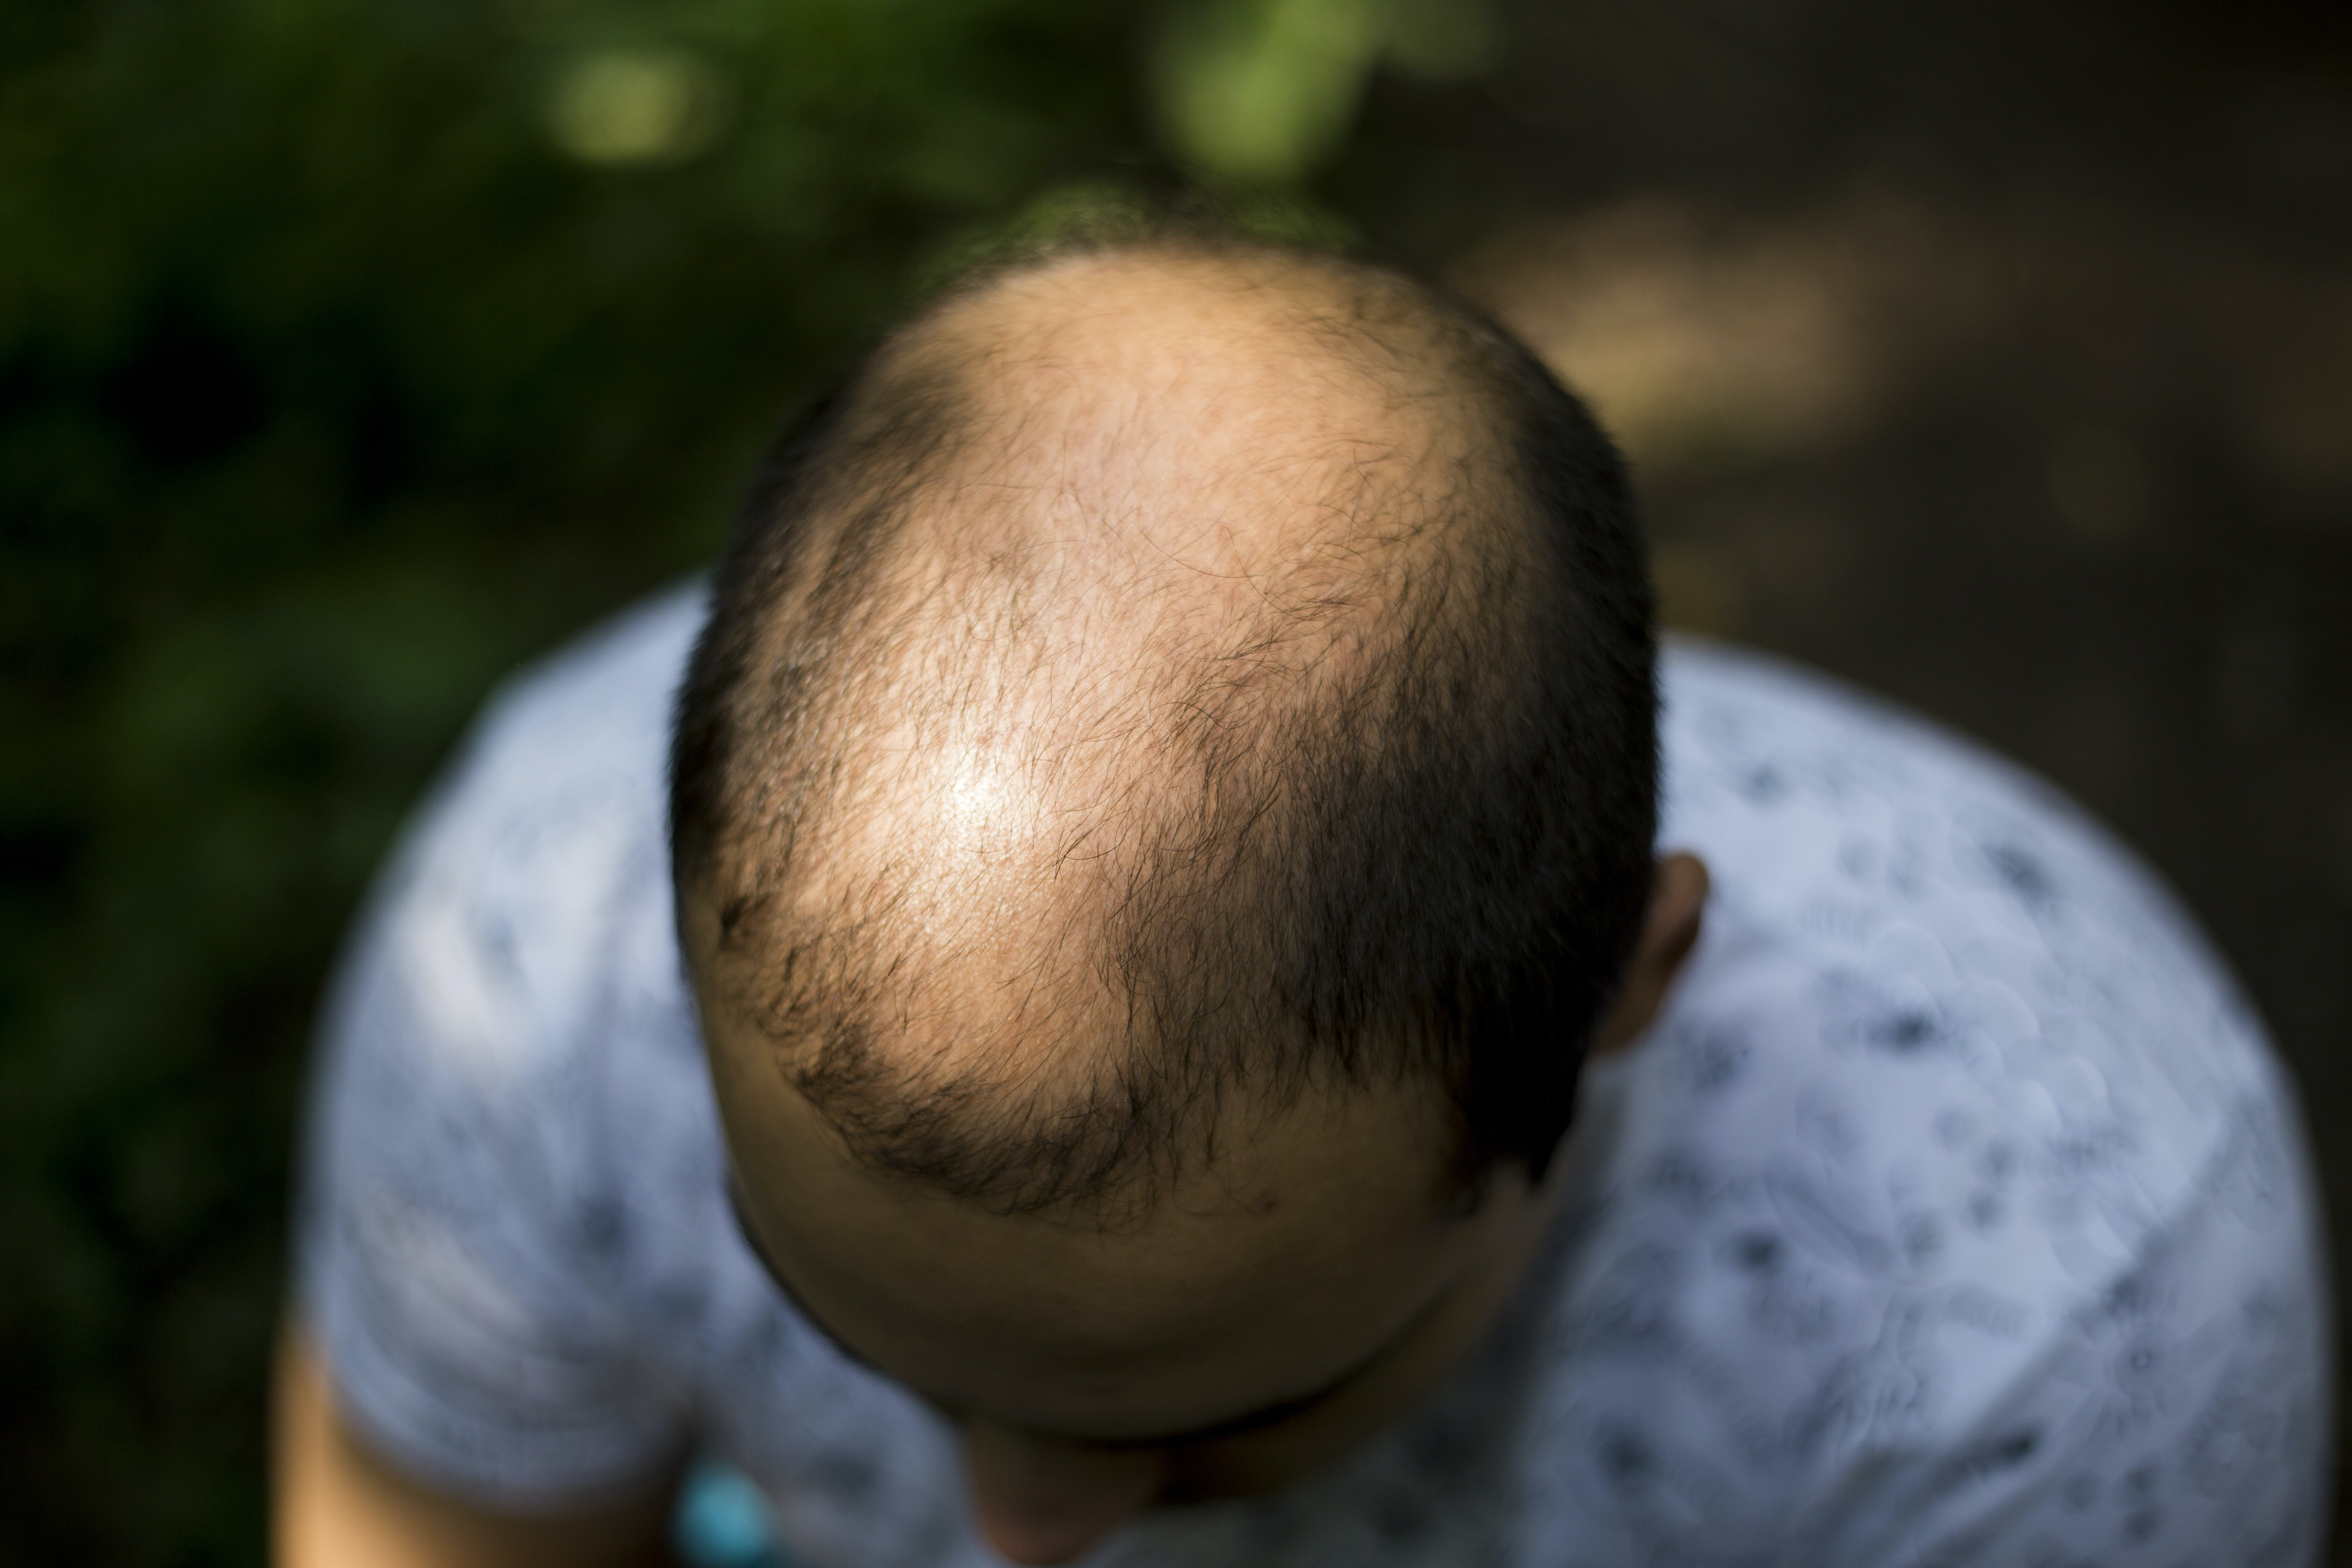 An image depicting a person suffering from male pattern baldness symptoms